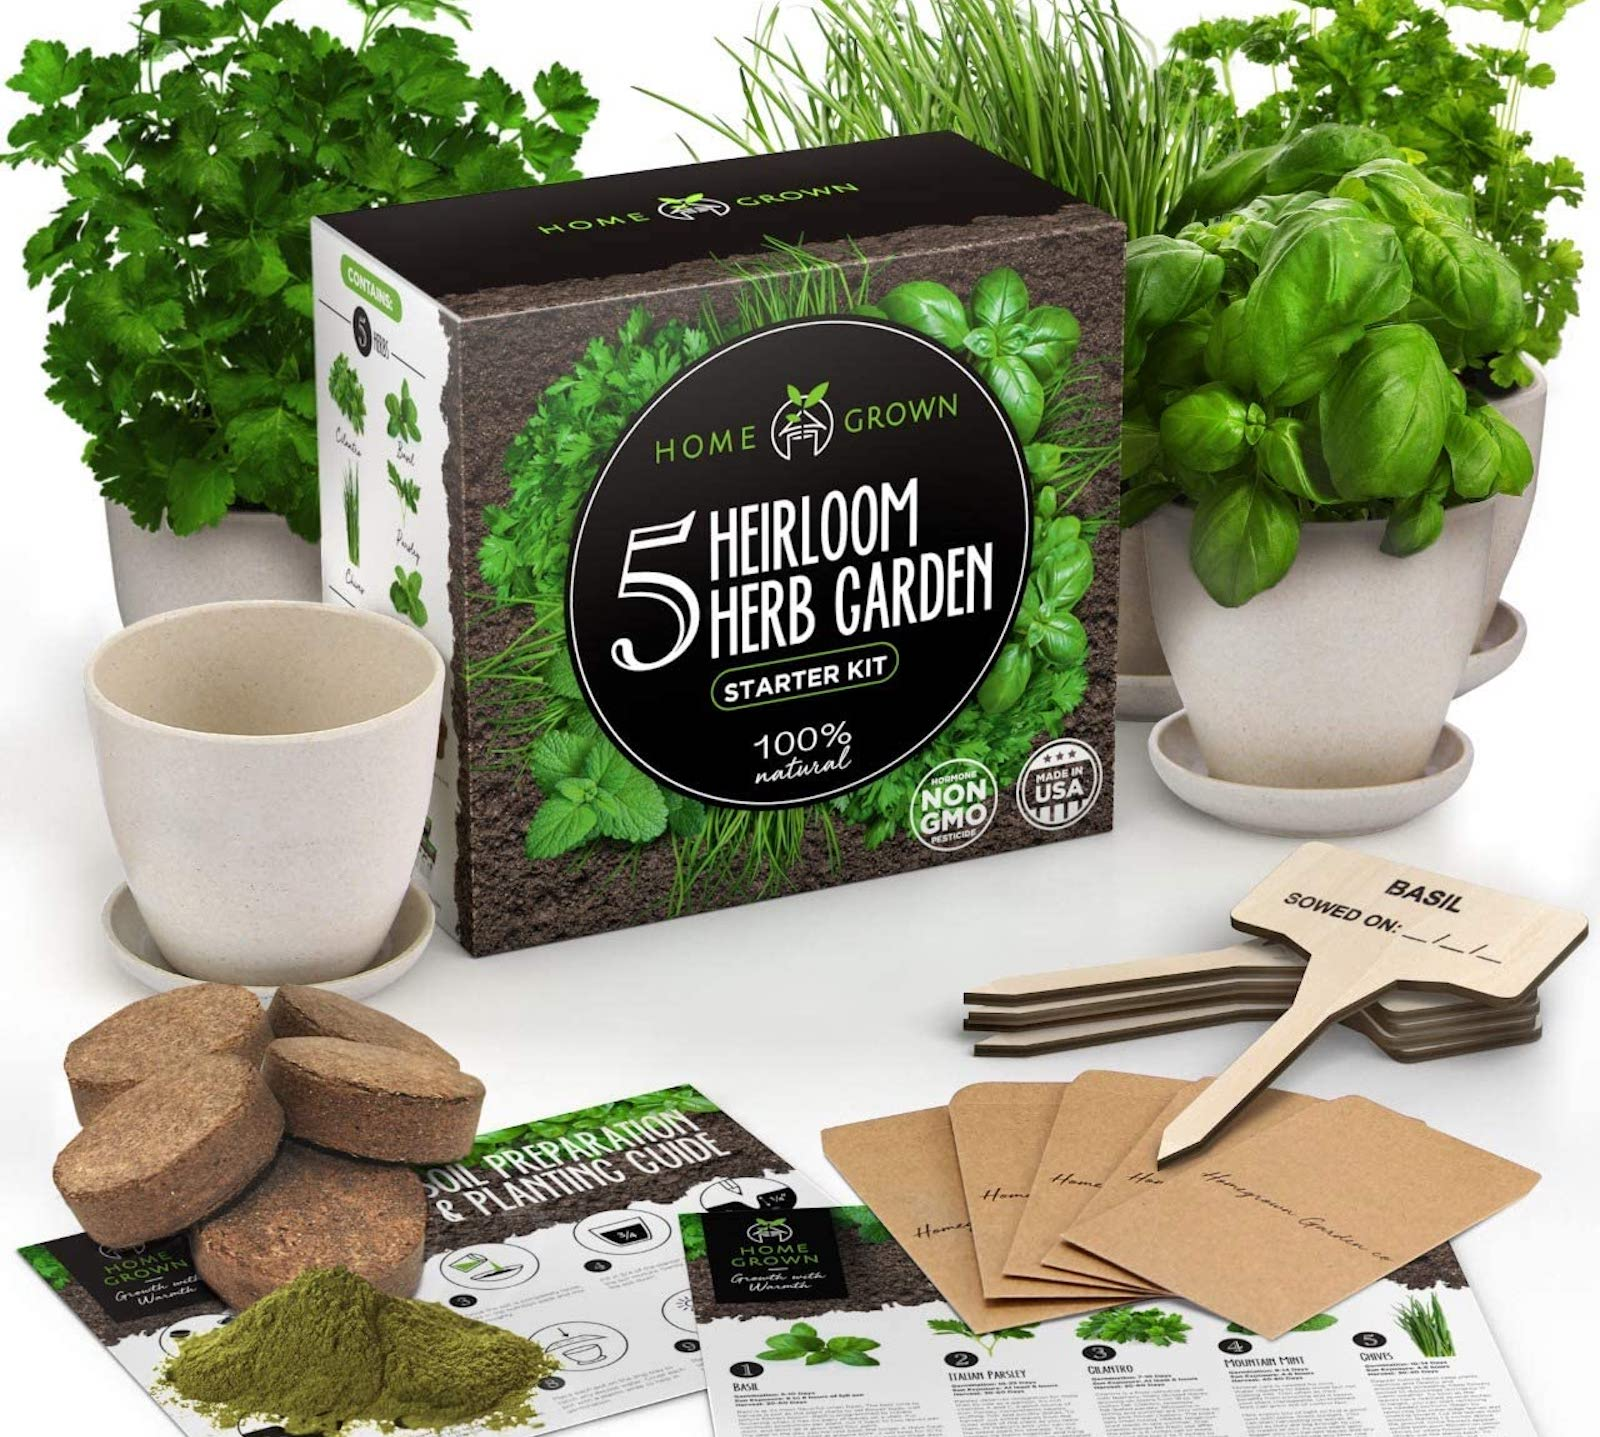 A herb garden kit box, with potted herbs, soil disks, and a how-to guide set around the box